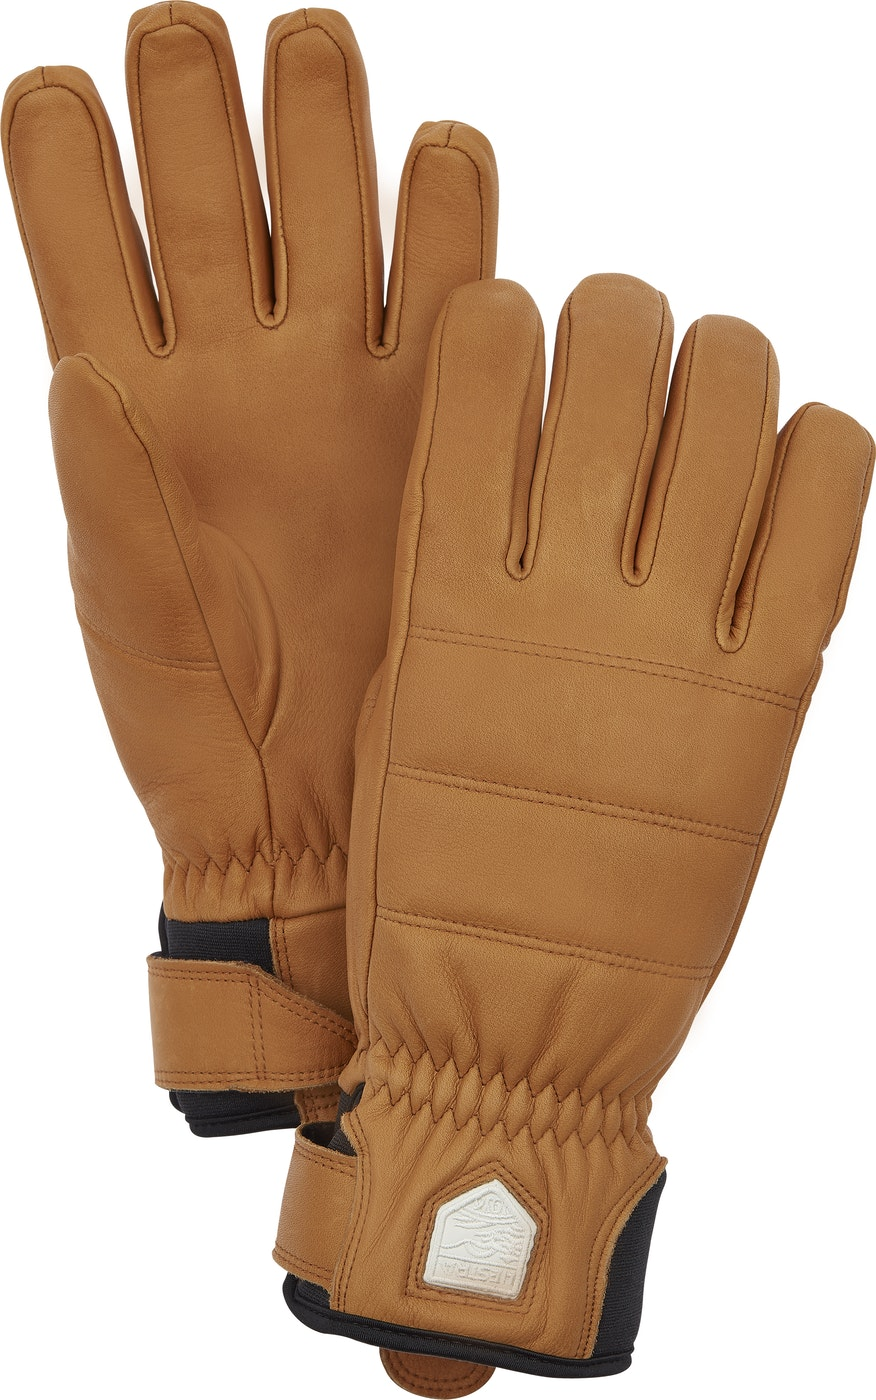 Product image for 32510 All Leather Primaloft - 5 finger